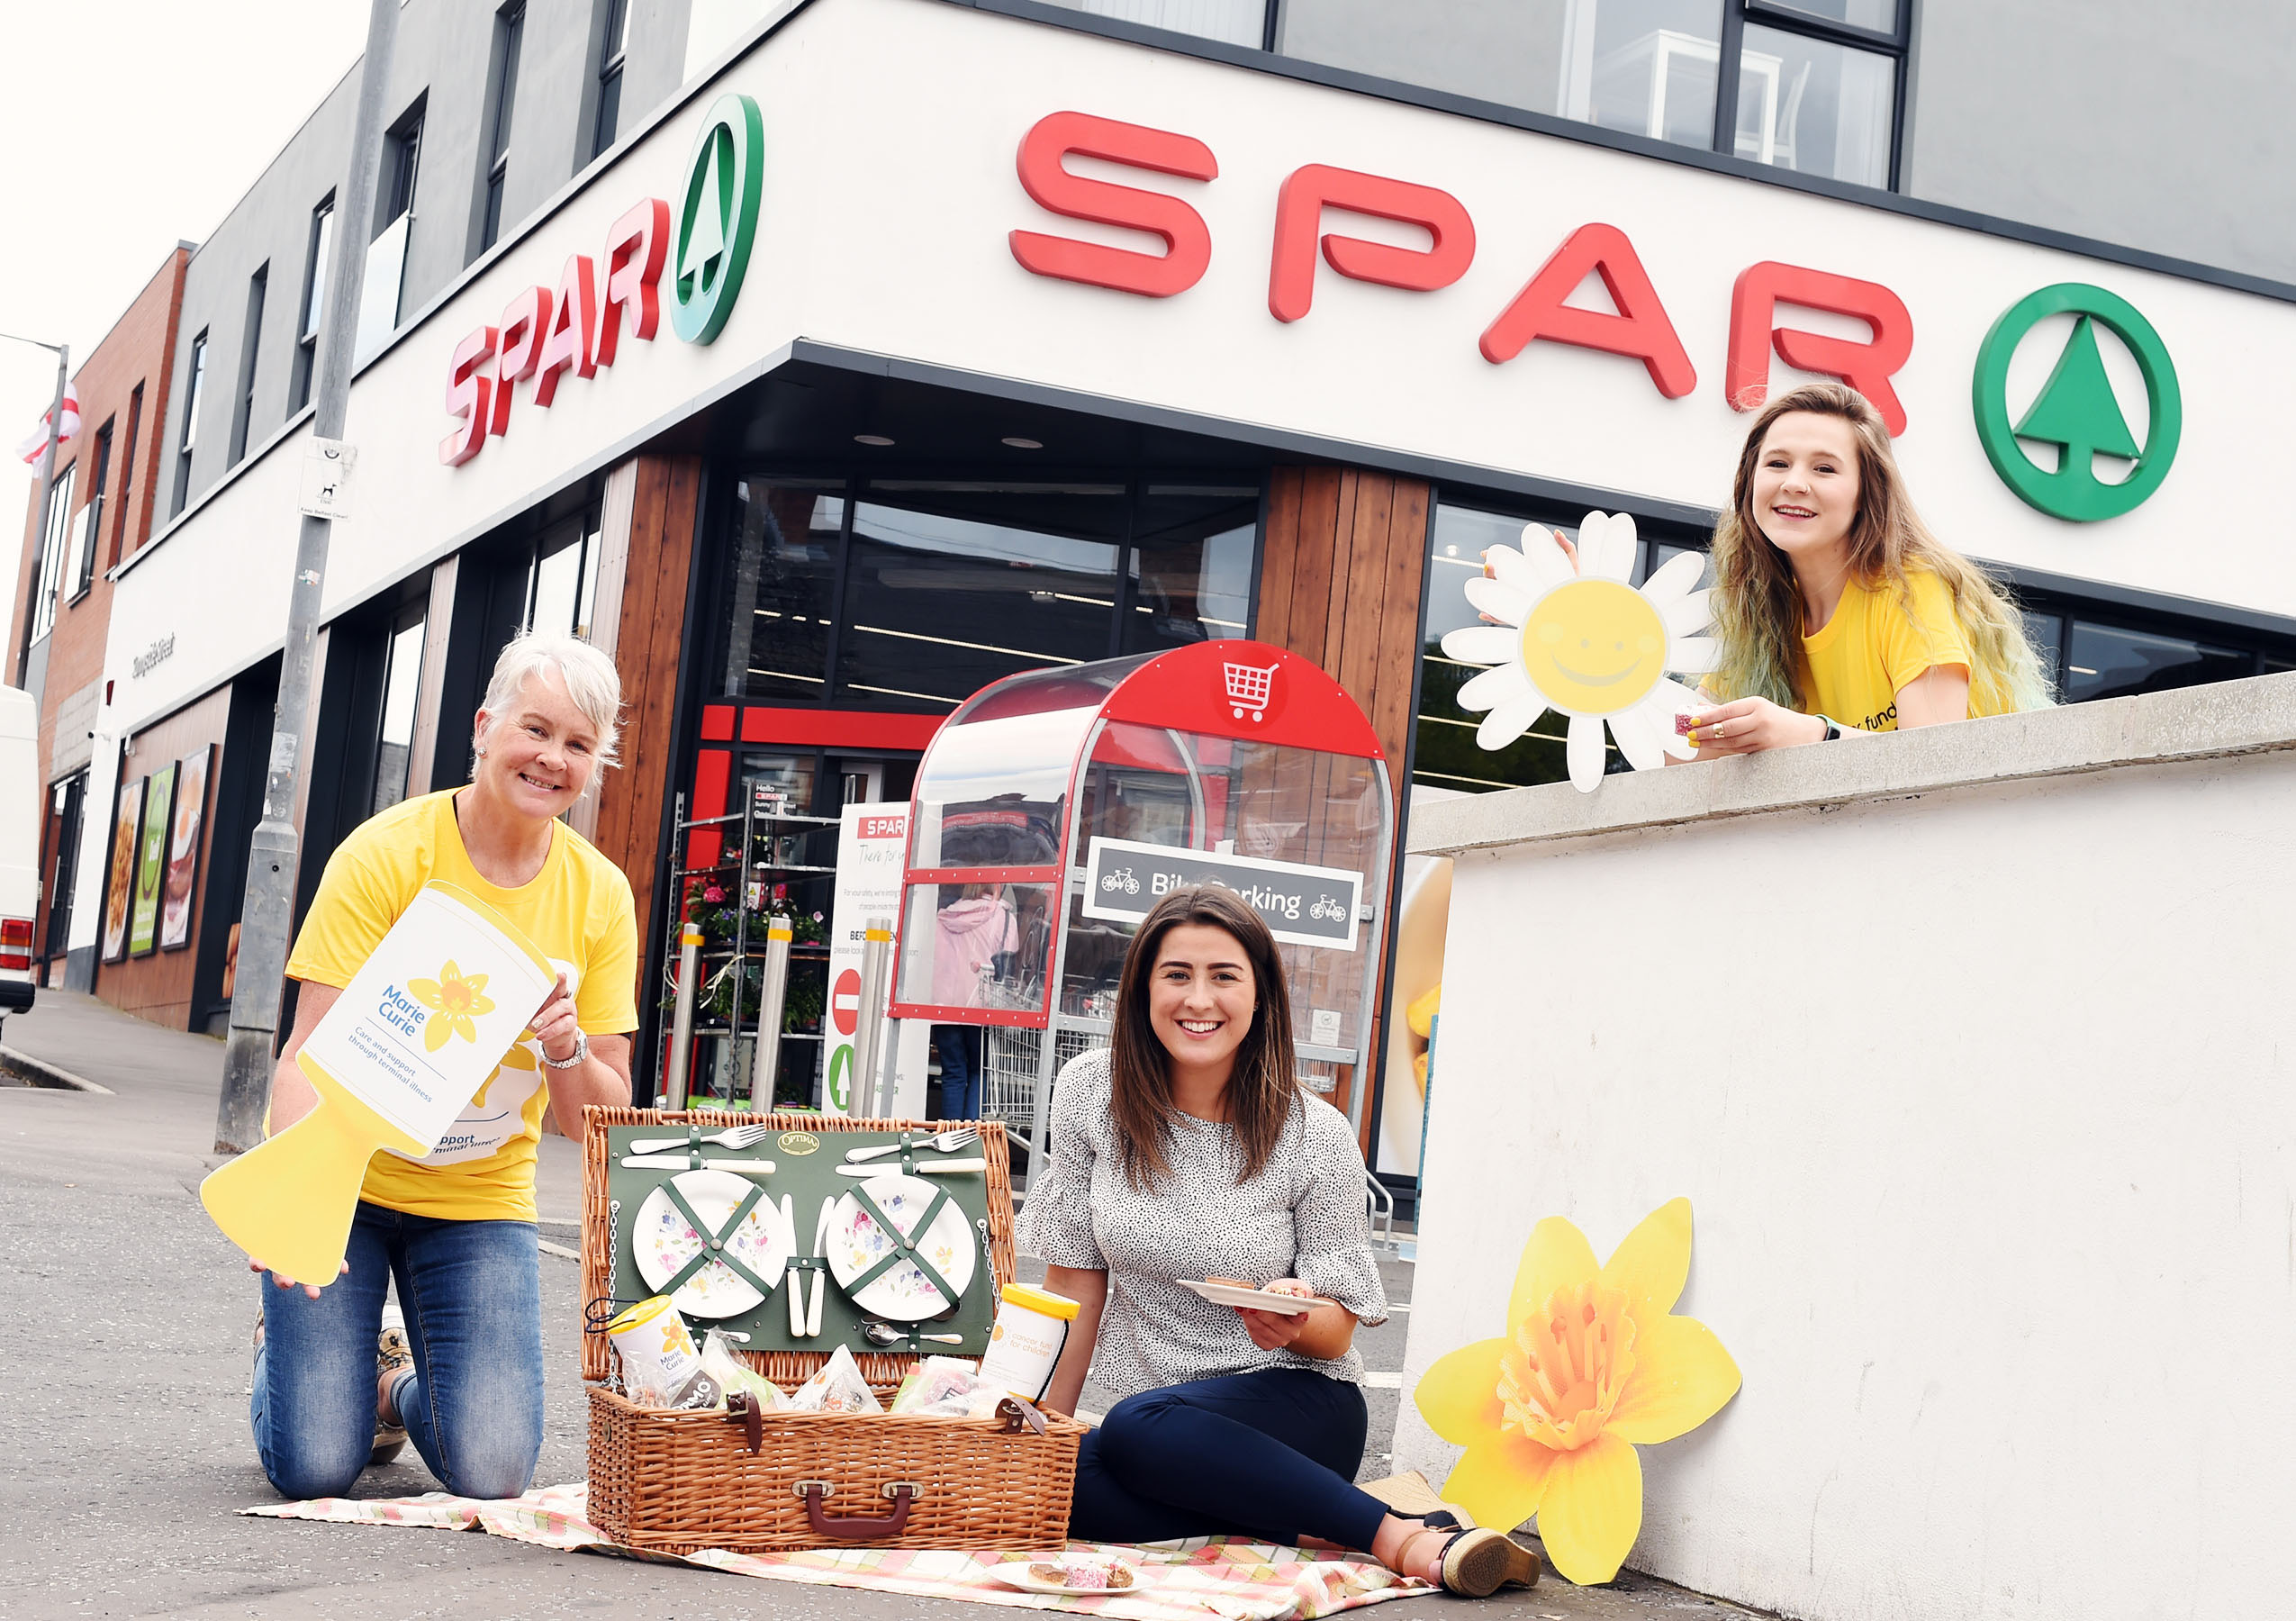 NI Charities gear up for first official fundraiser since lockdown with Pick Me Up Picnic